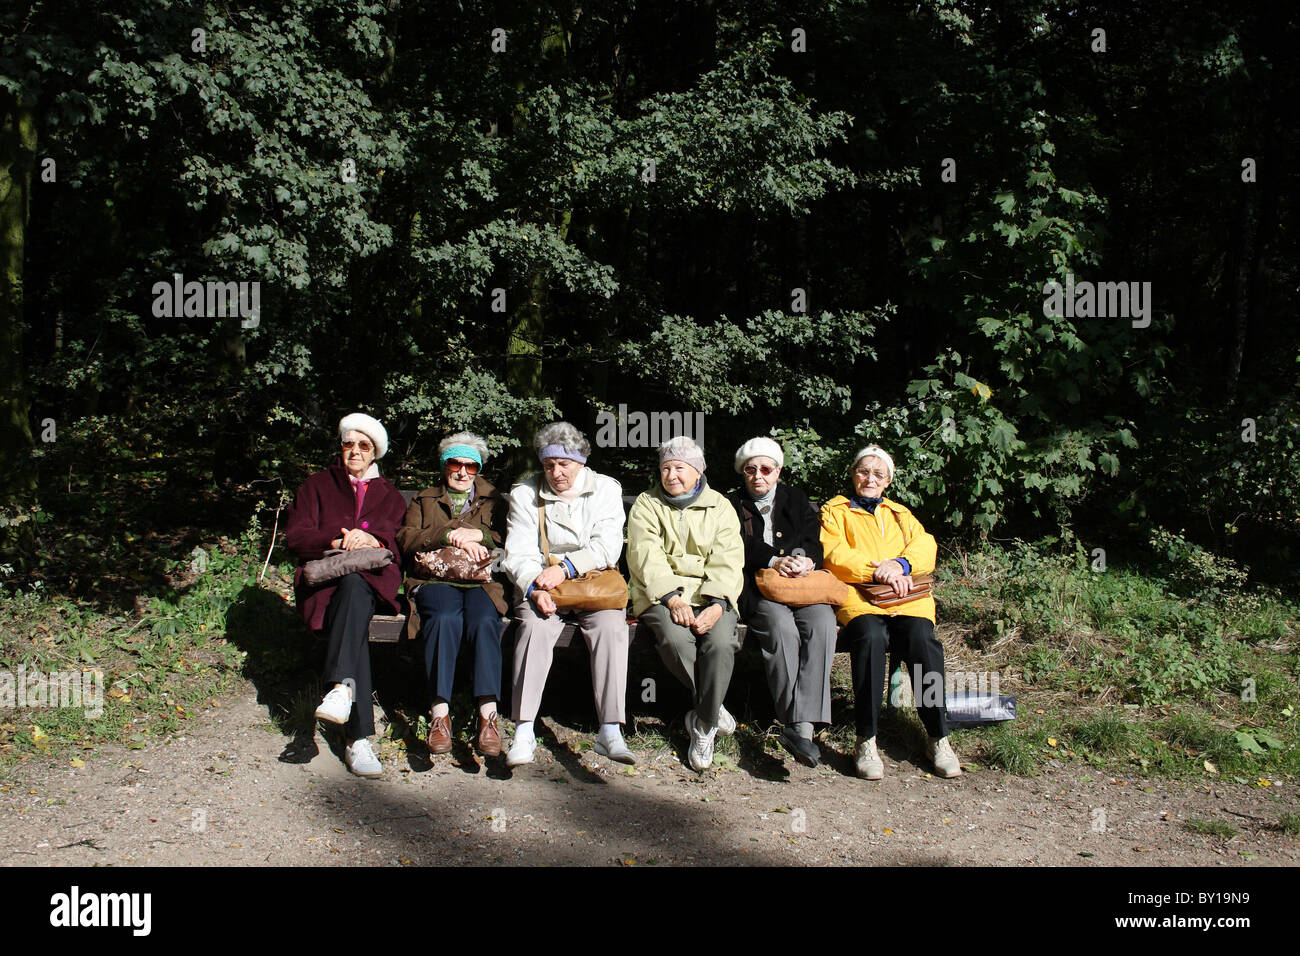 Pensioners in a recreational area in the city of Poznan, Poland - Stock Image